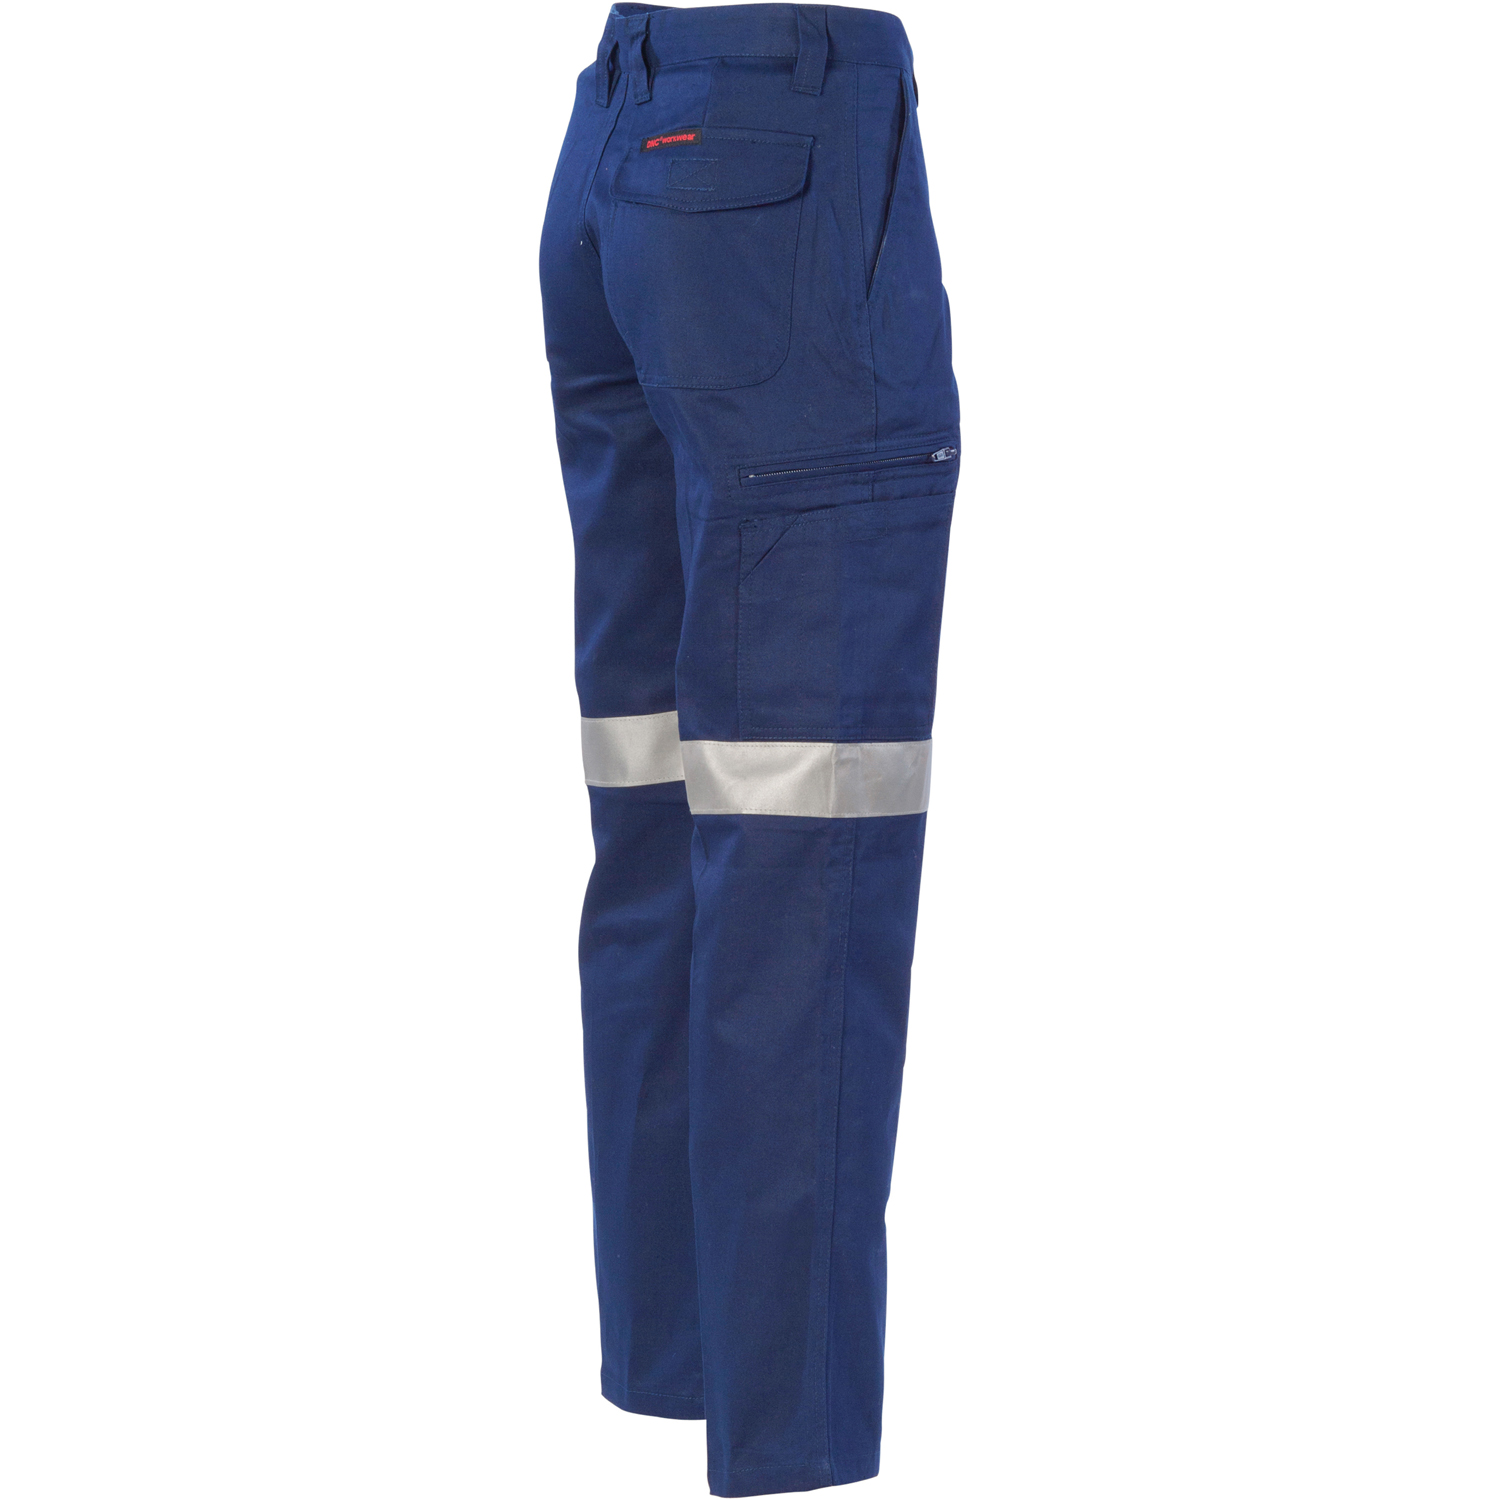 Product Display Dnc Workwear Workwear Work Wear